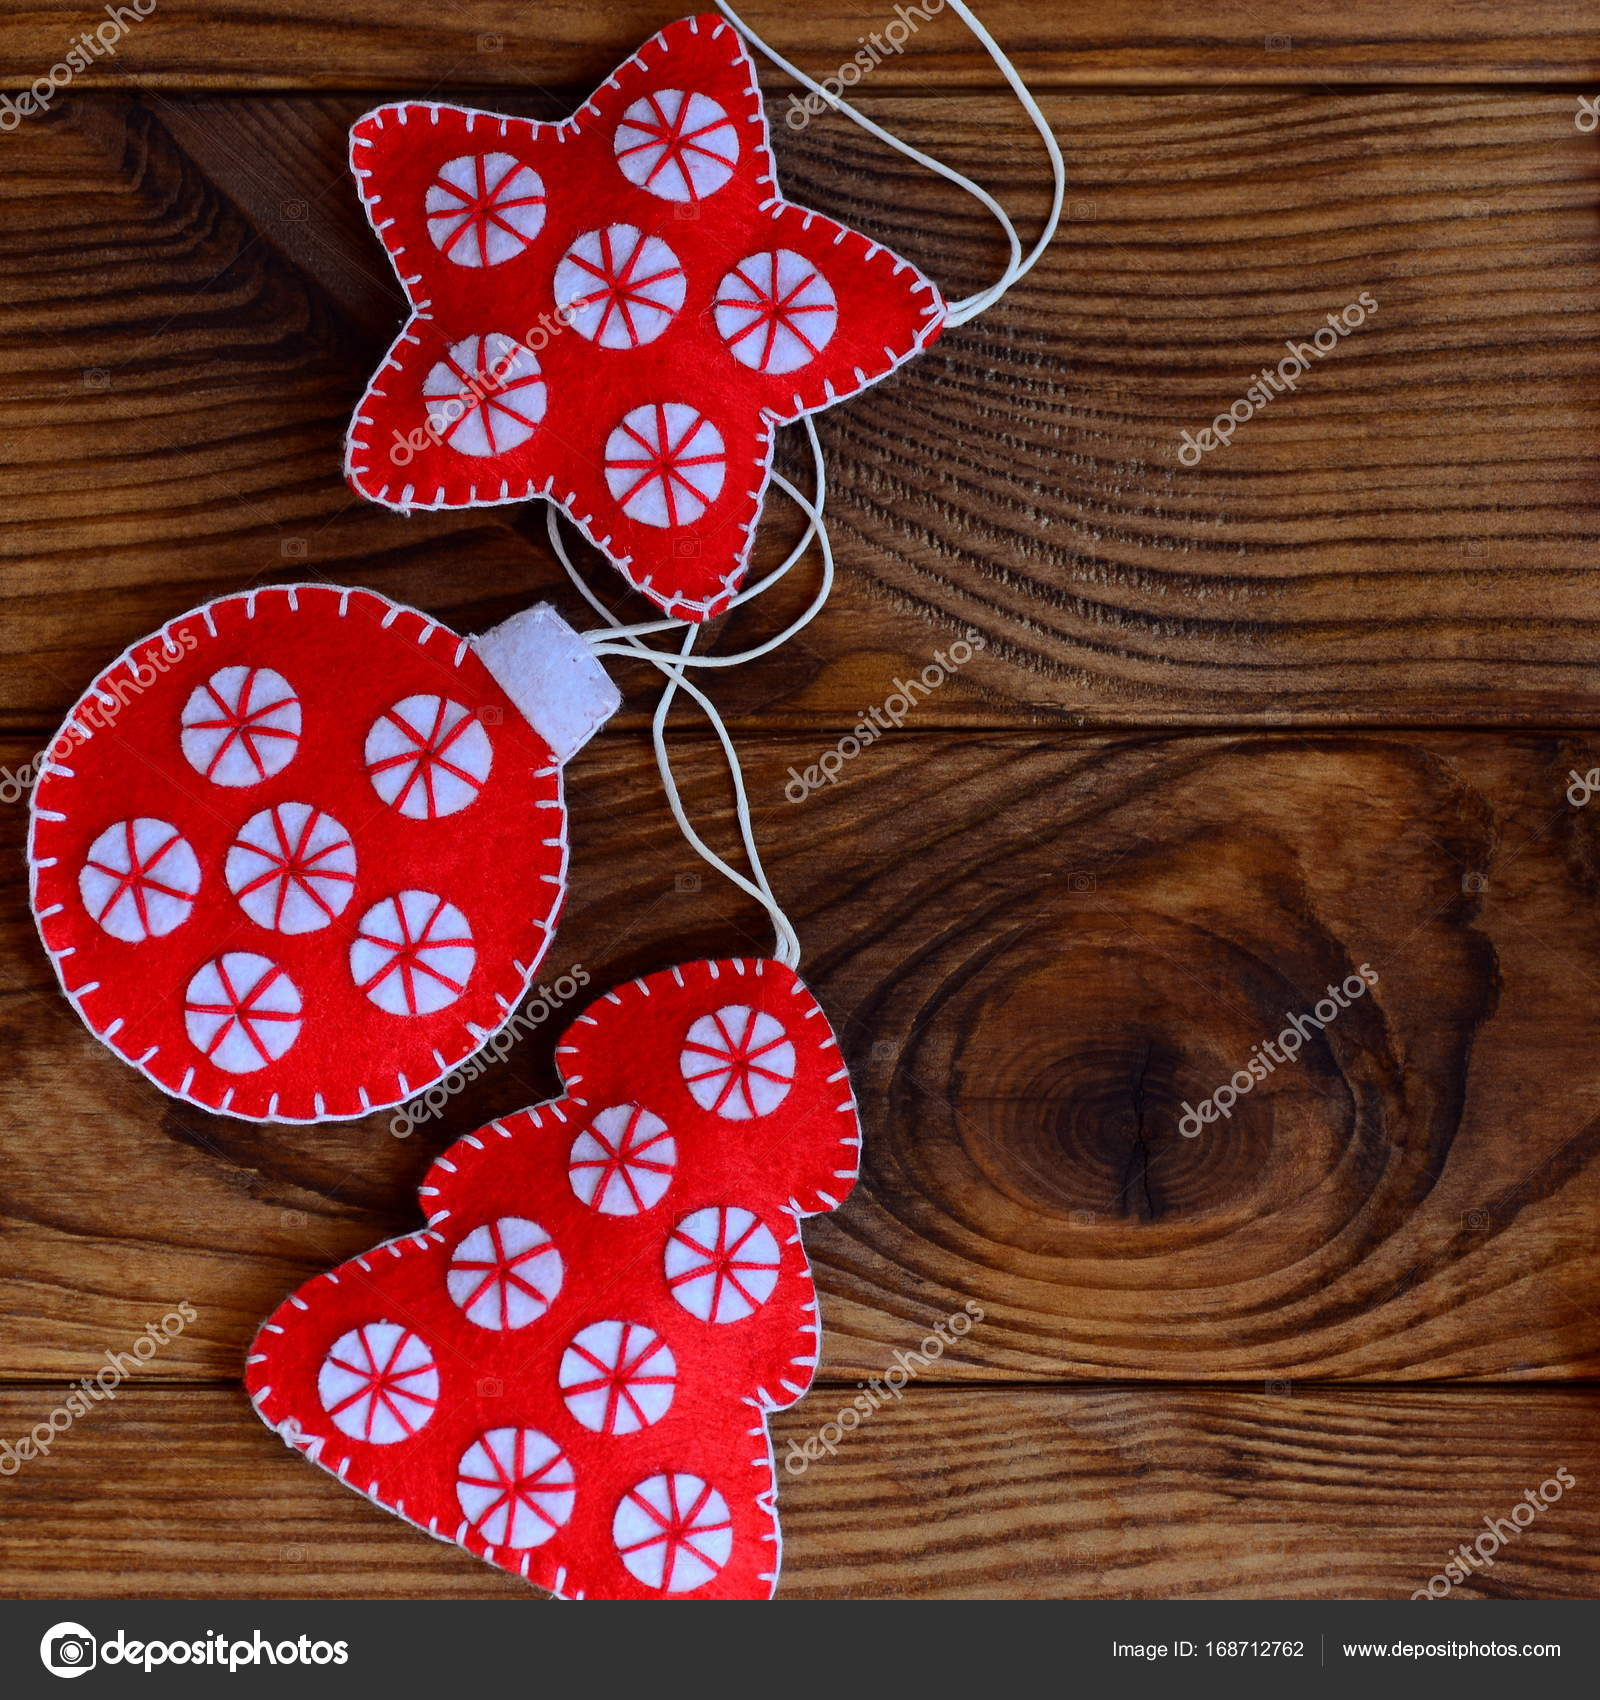 Homemade christmas crafts made from red and white felt for Sell handmade crafts online free